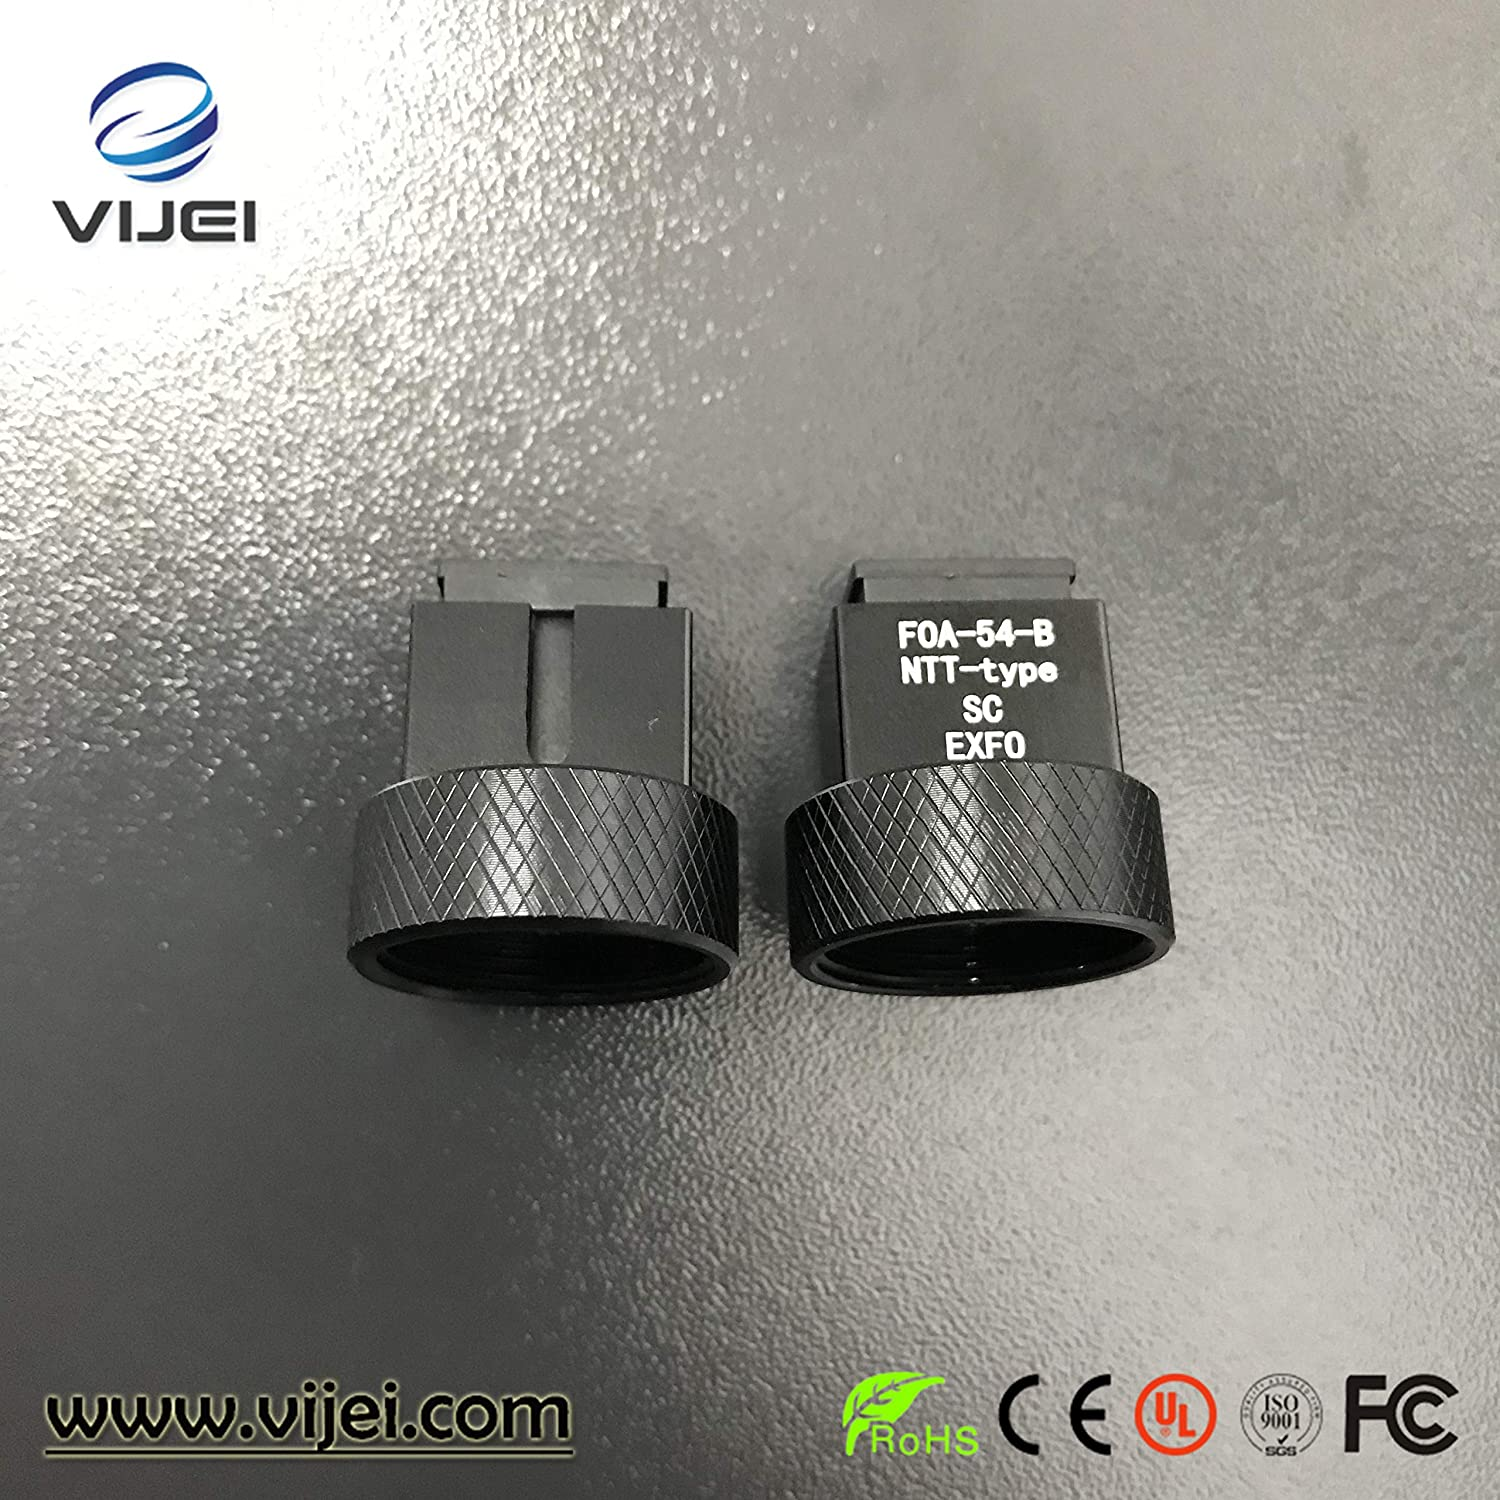 EXFO EPM-100 FPM-300 FPM-600 power meter SC connector FOA-54-B NTT-type SC EXFO Adapter